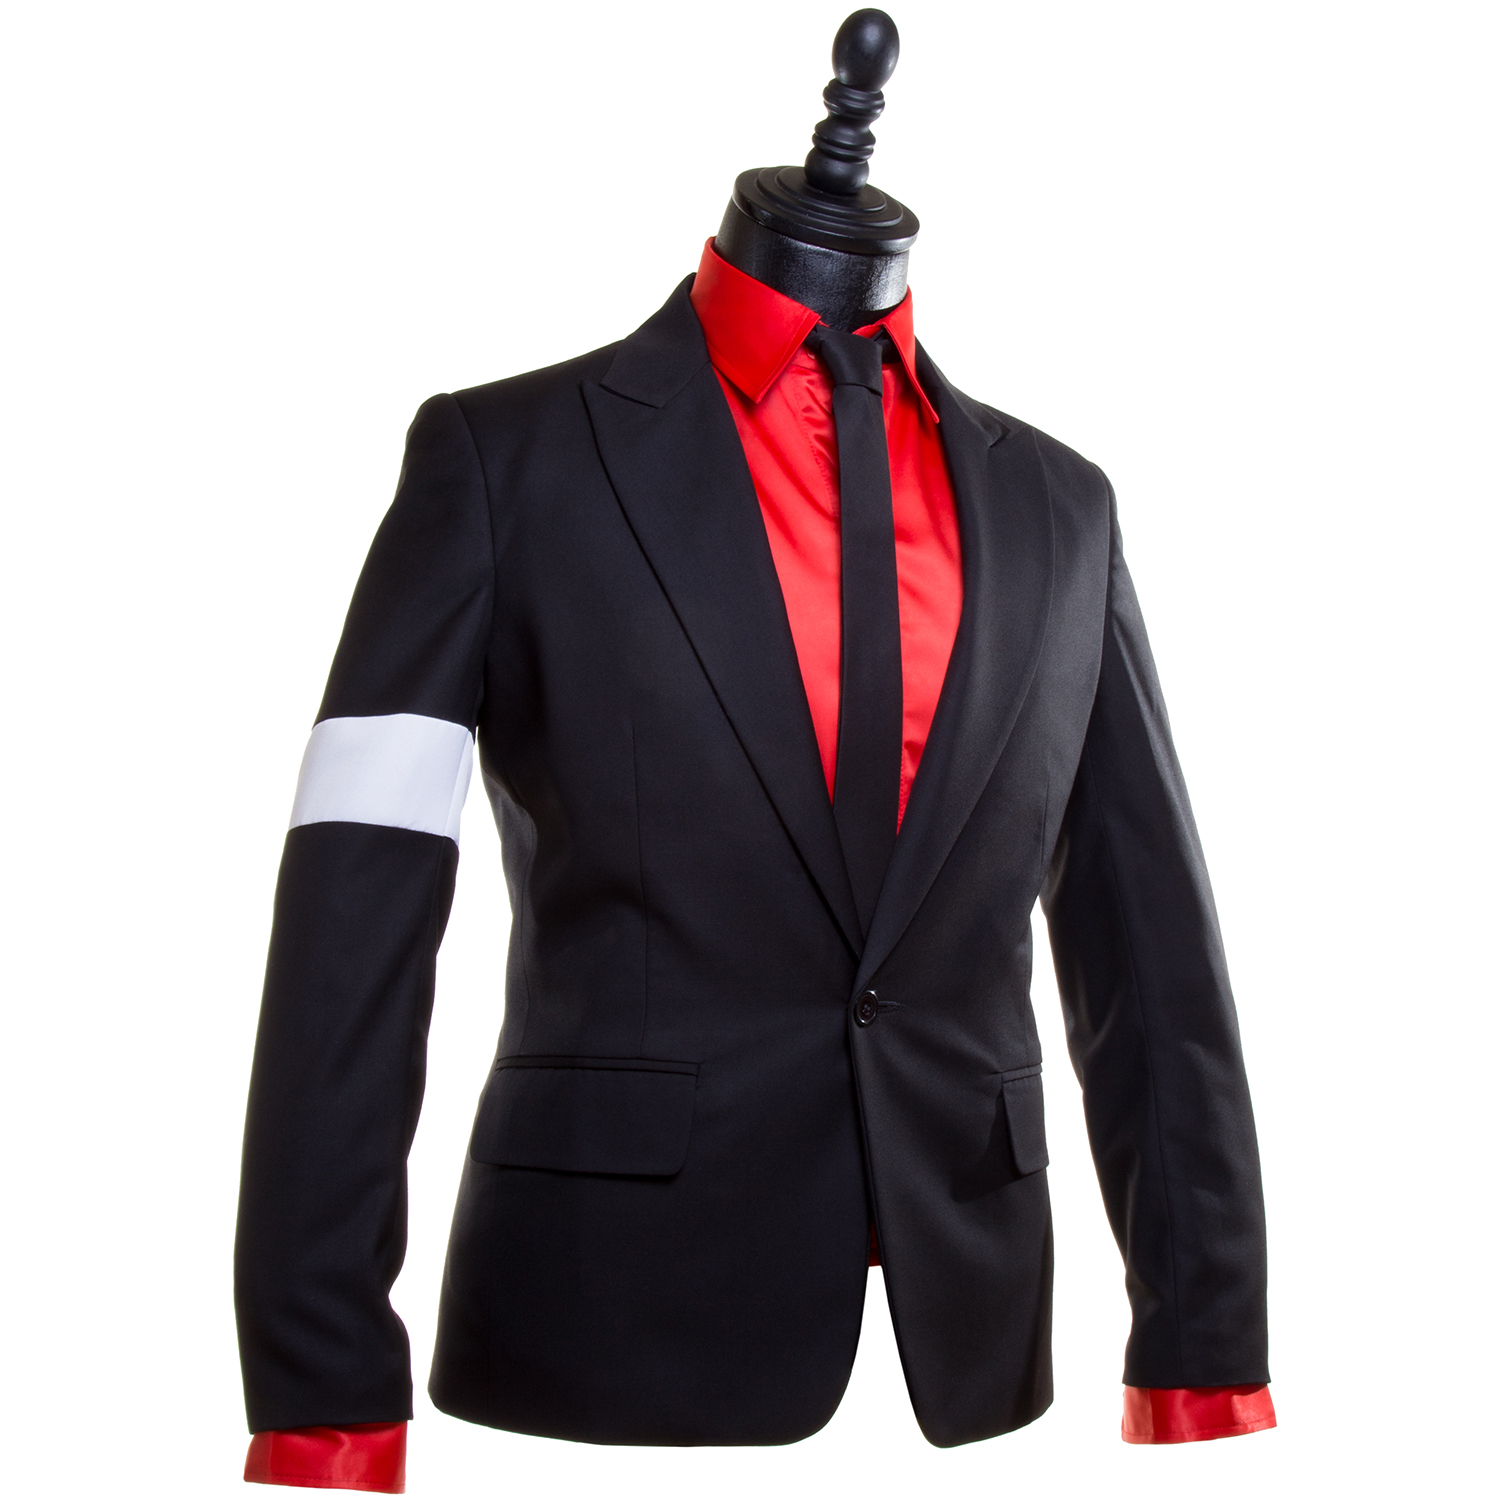 dangerous black suit jacket with white armband � mj